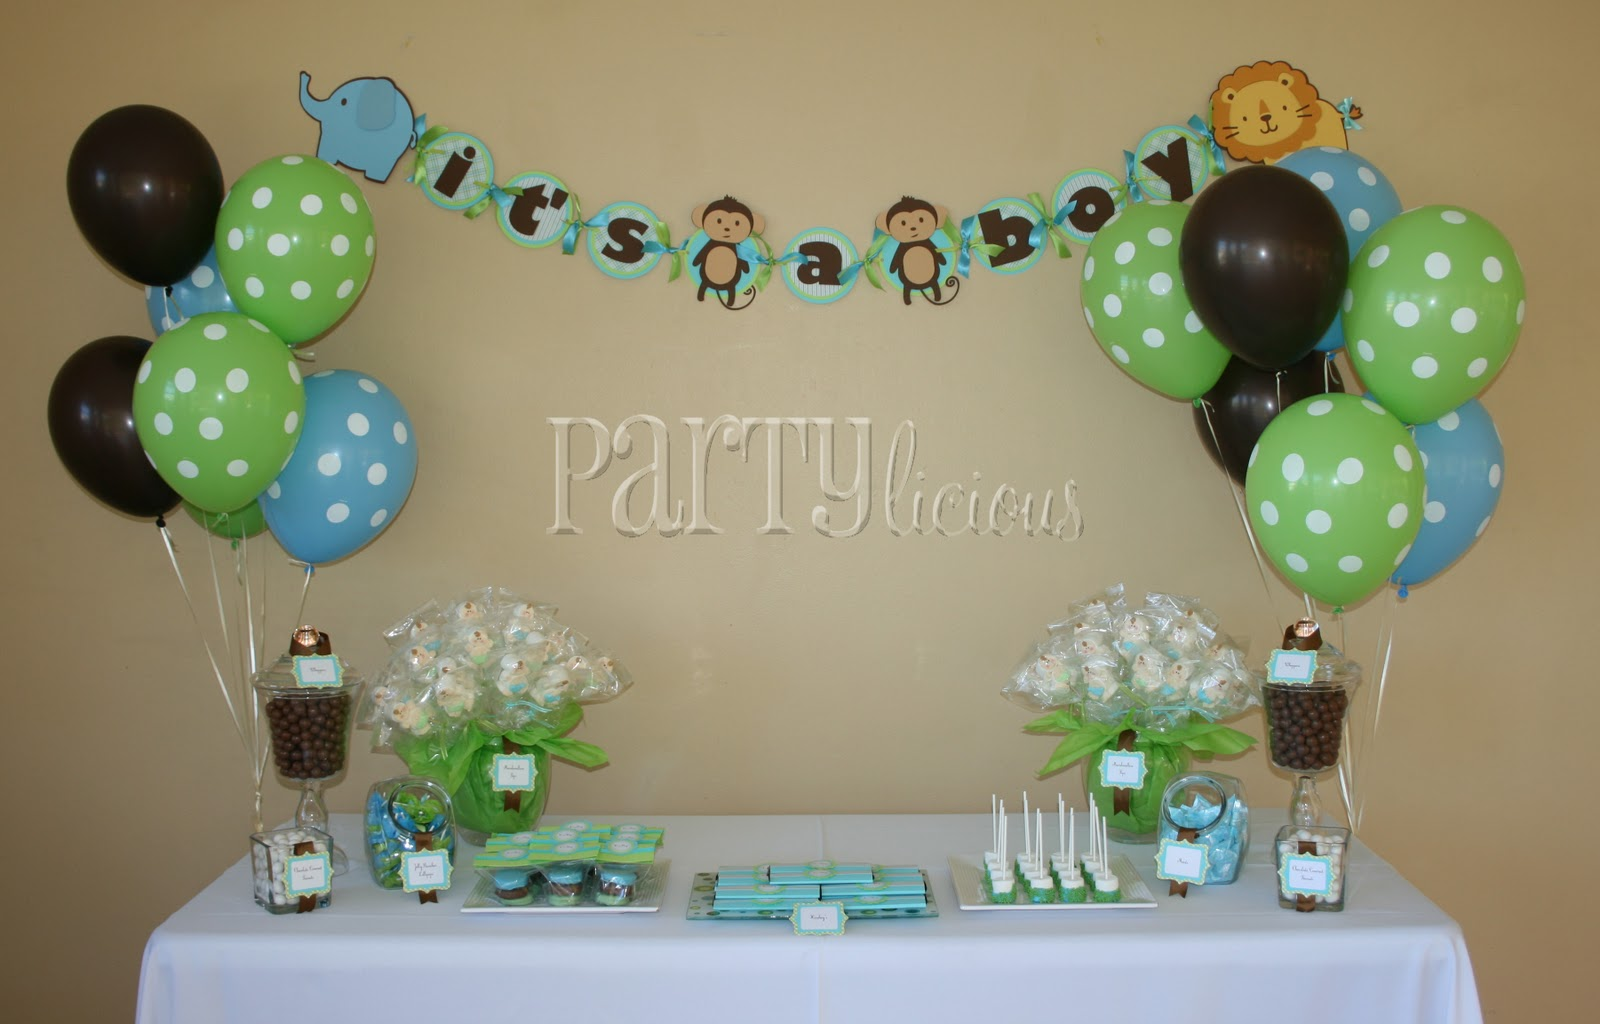 Partylicious events pr december 2010 for Baby shower decoration supplies